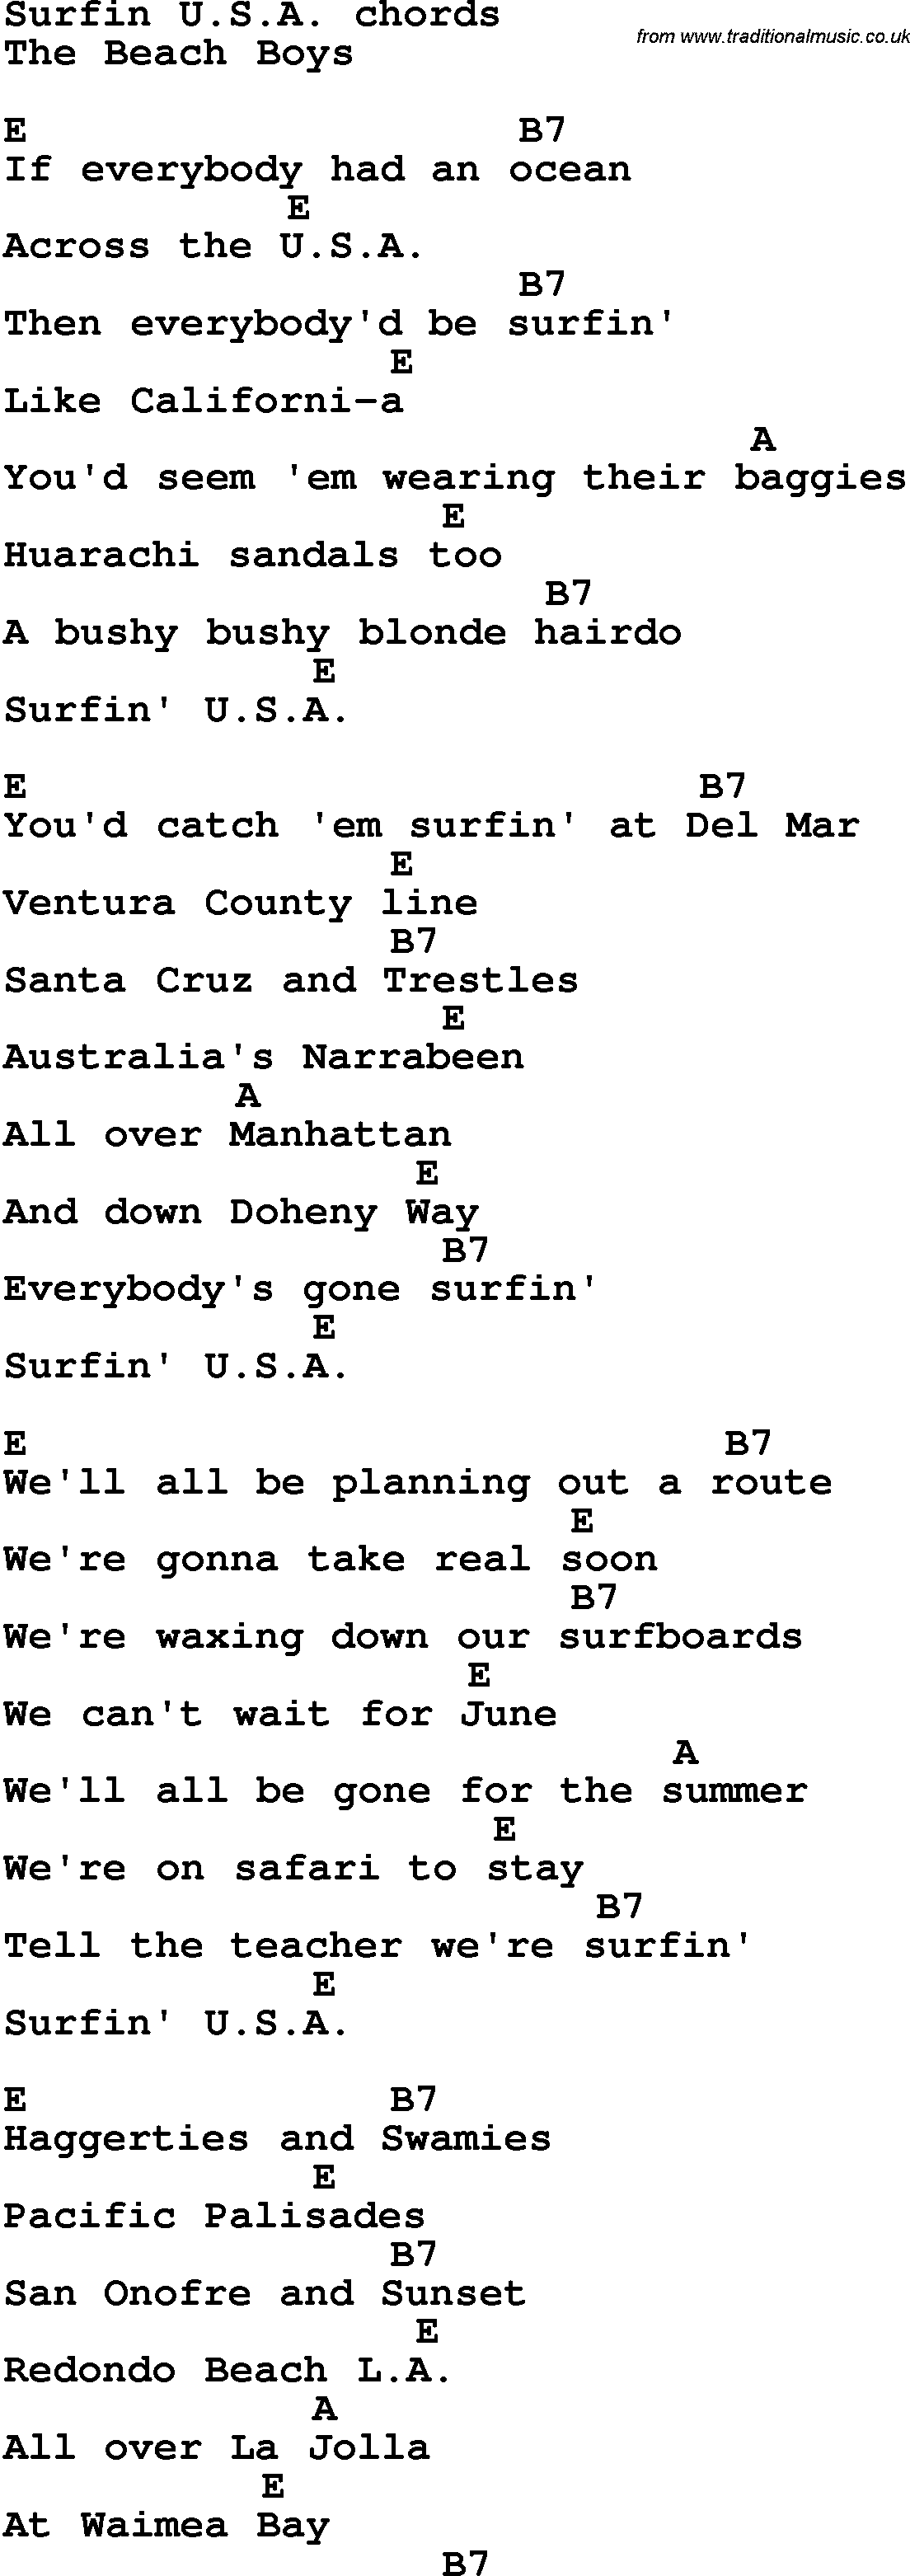 Song lyrics with guitar chords for surfin usa song lyrics with guitar chords for surfin usa hexwebz Images